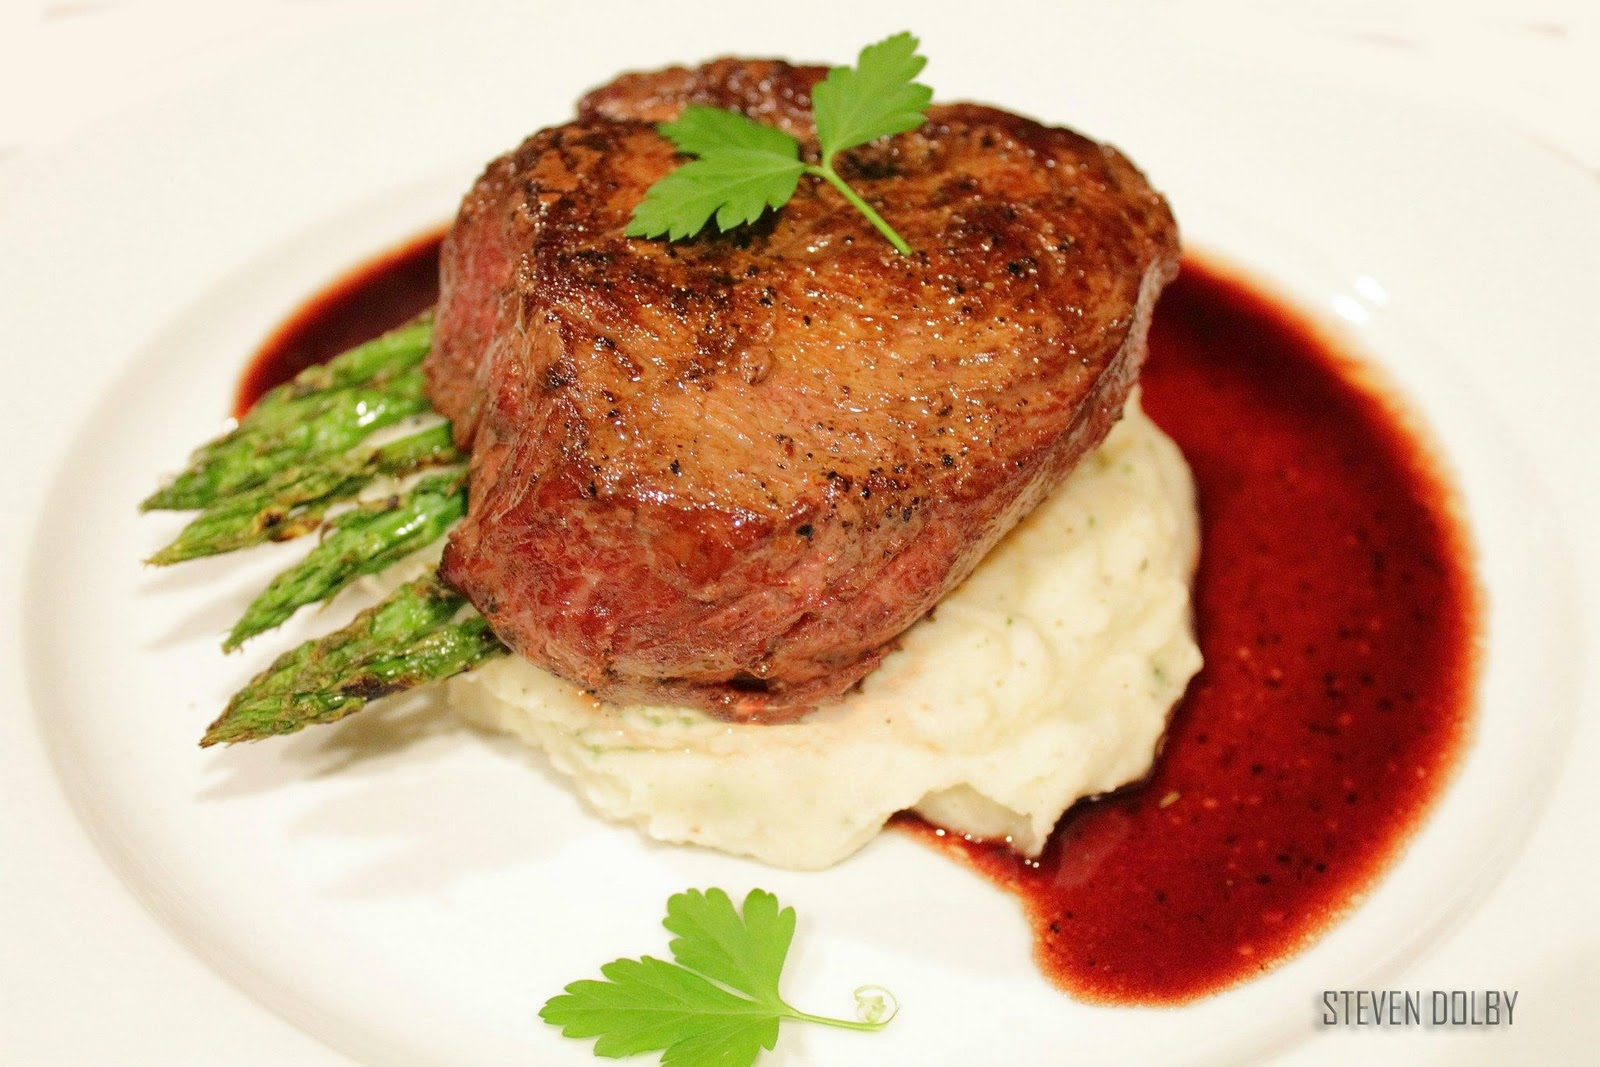 Fillet Steak with Red Wine Reduction by Steven Dolby